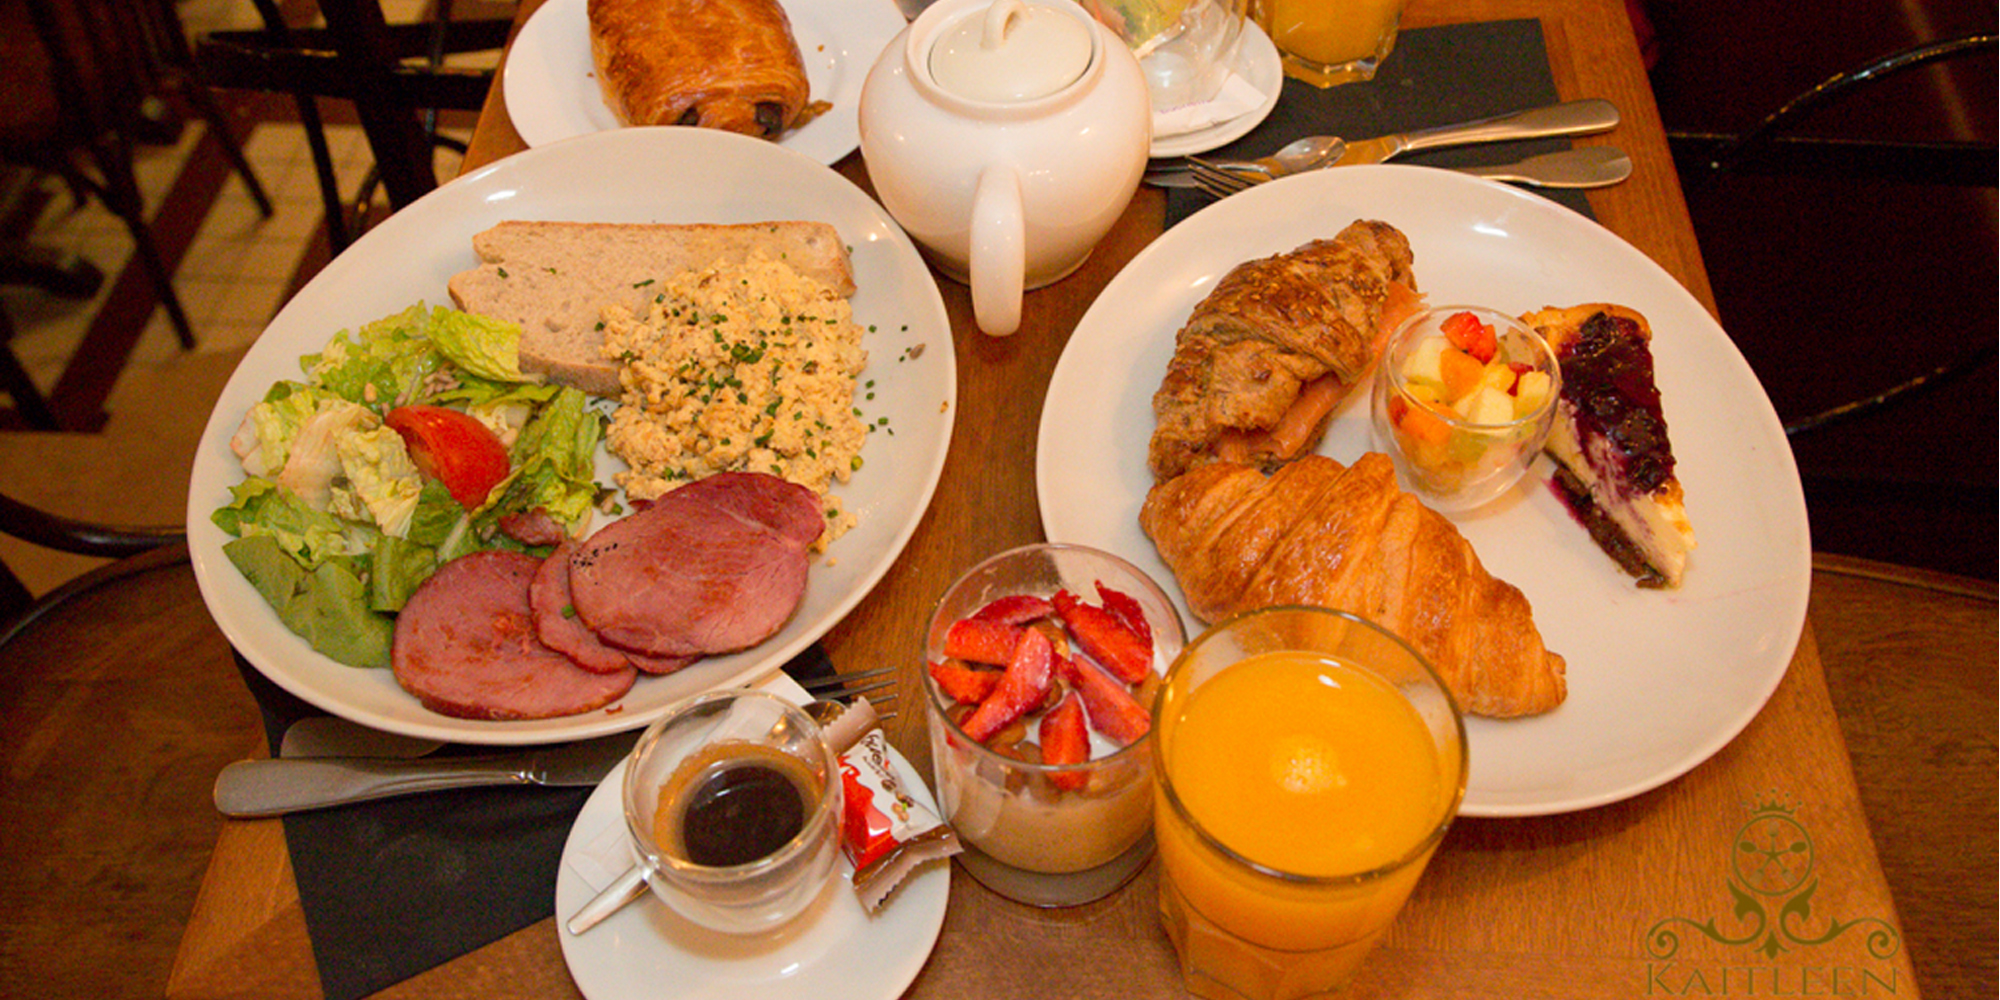 Brunch Kaitleen (75001 Paris)